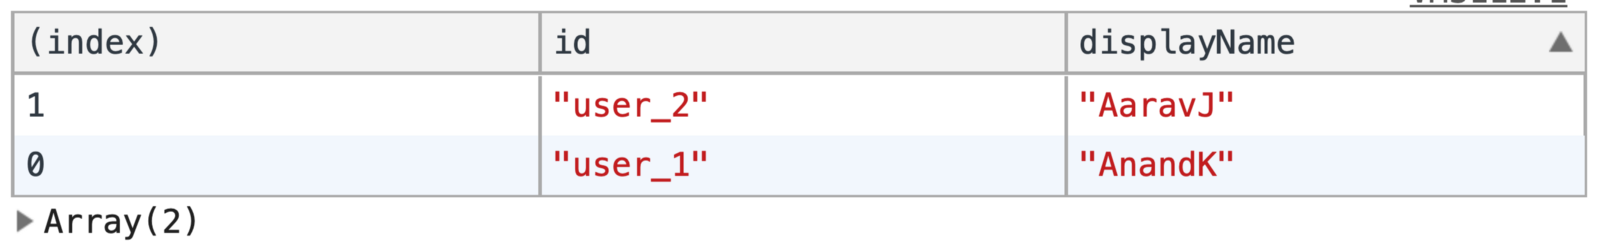 "console.table(users, [""id"", ""displayName""])"